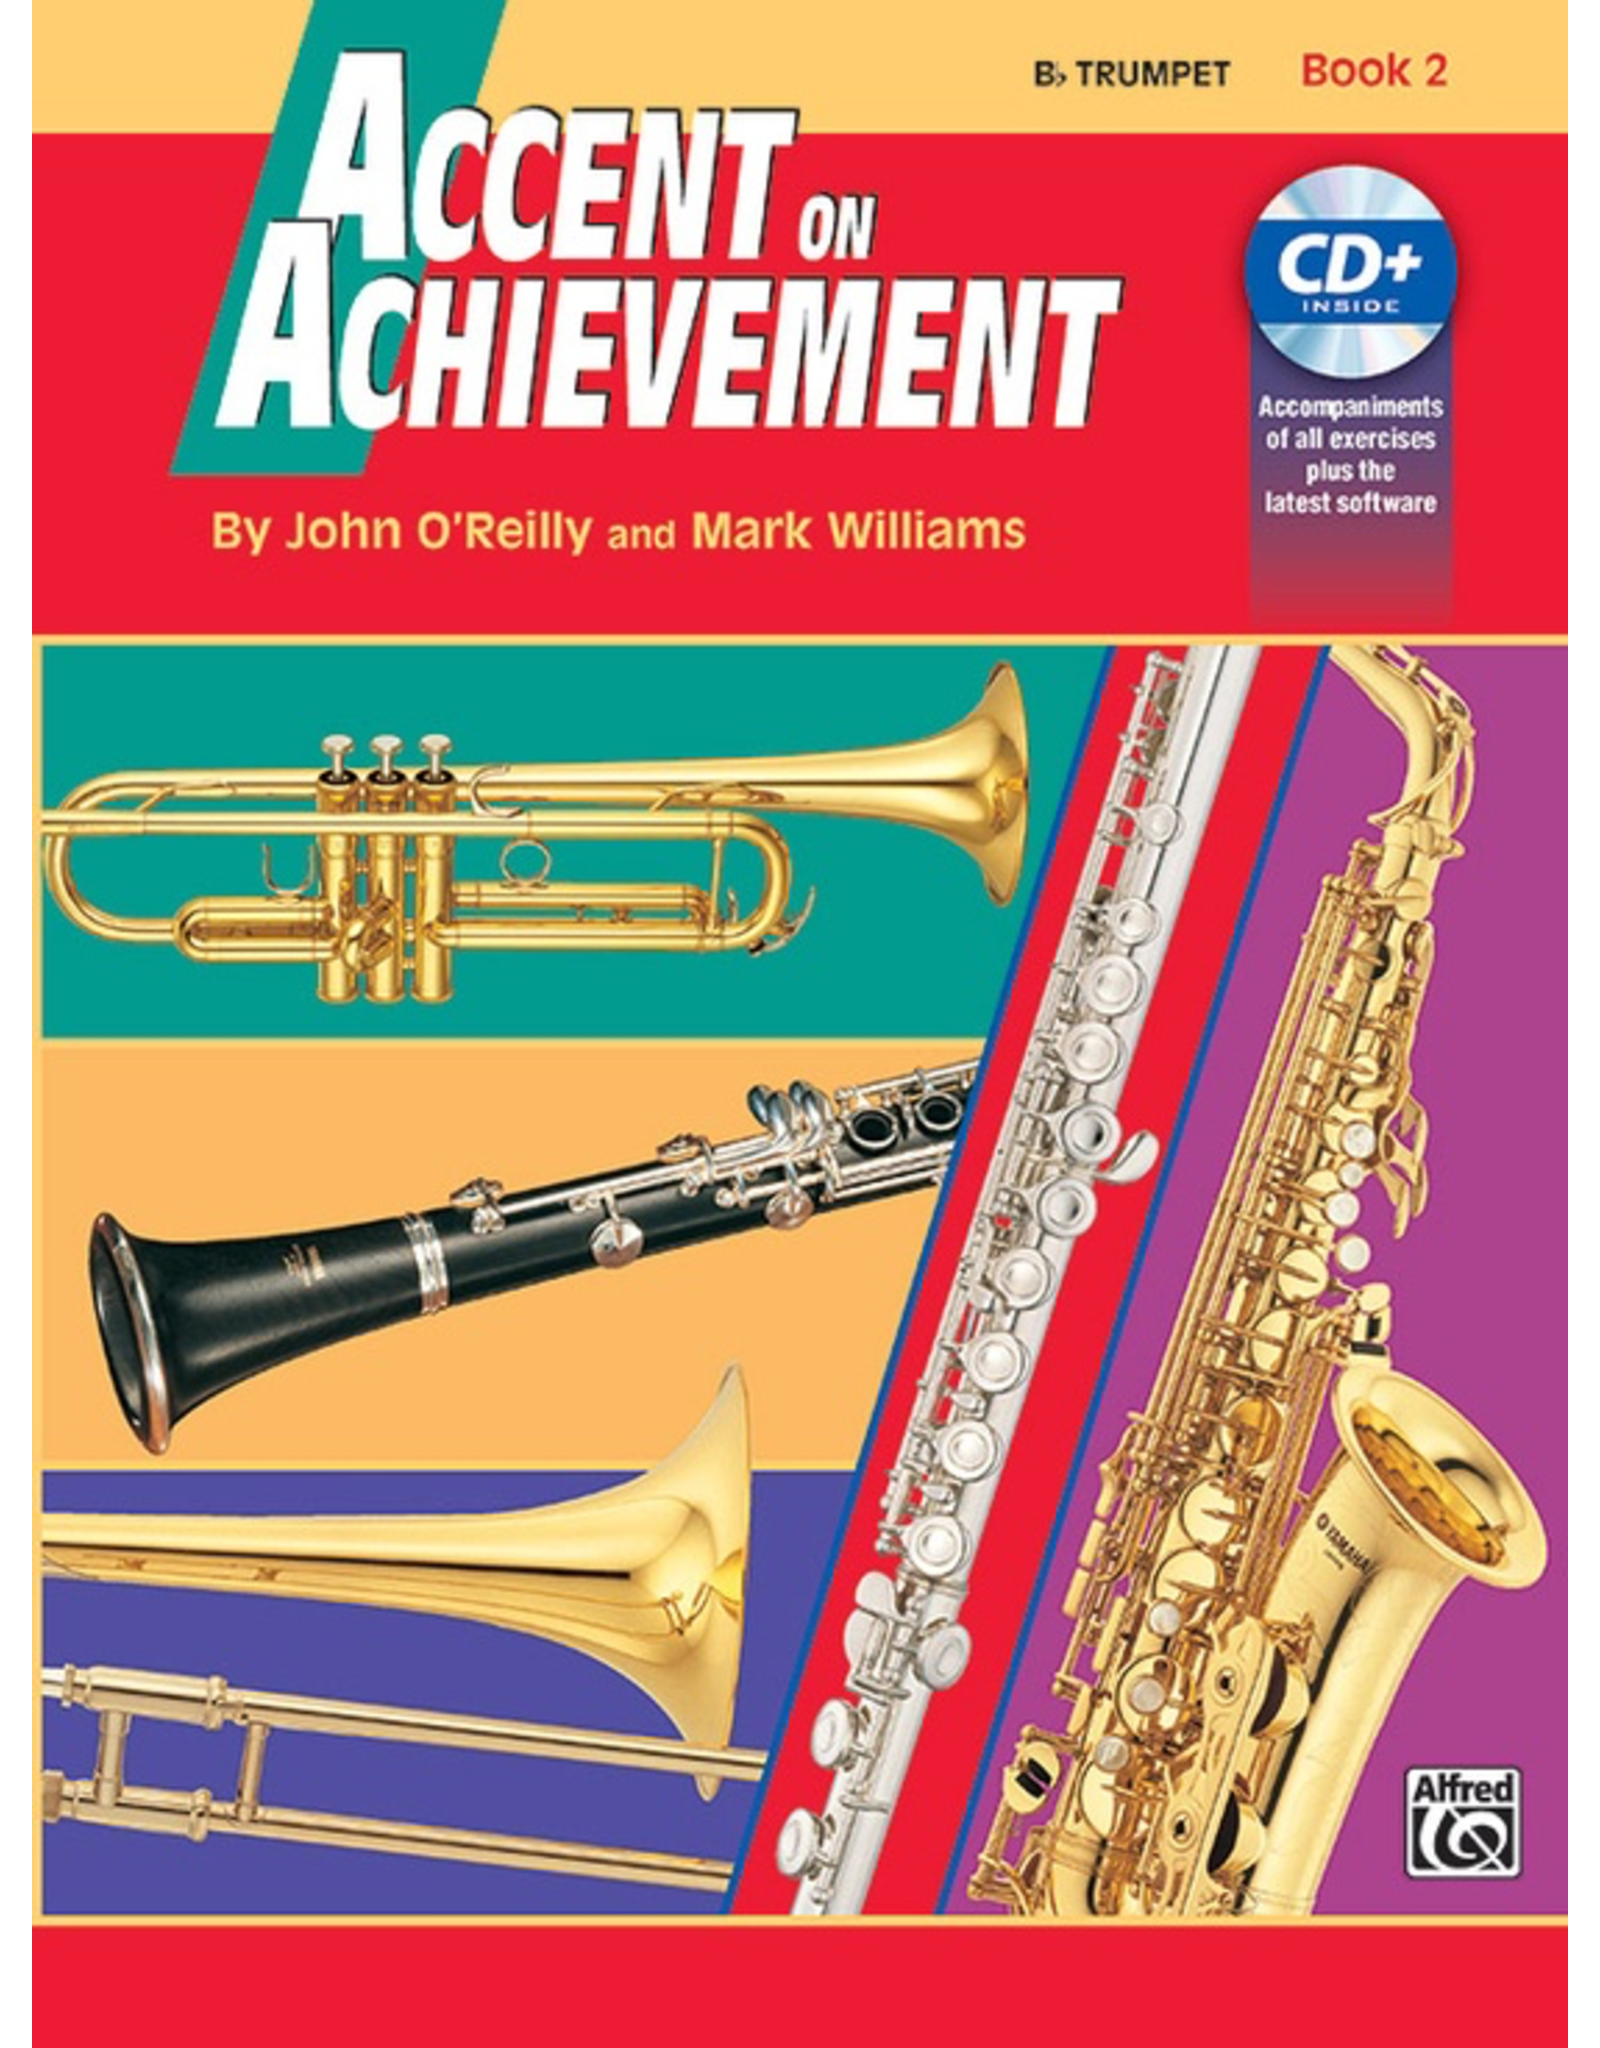 Alfred Accent on Achievement Book 2 with CD, Trumpet